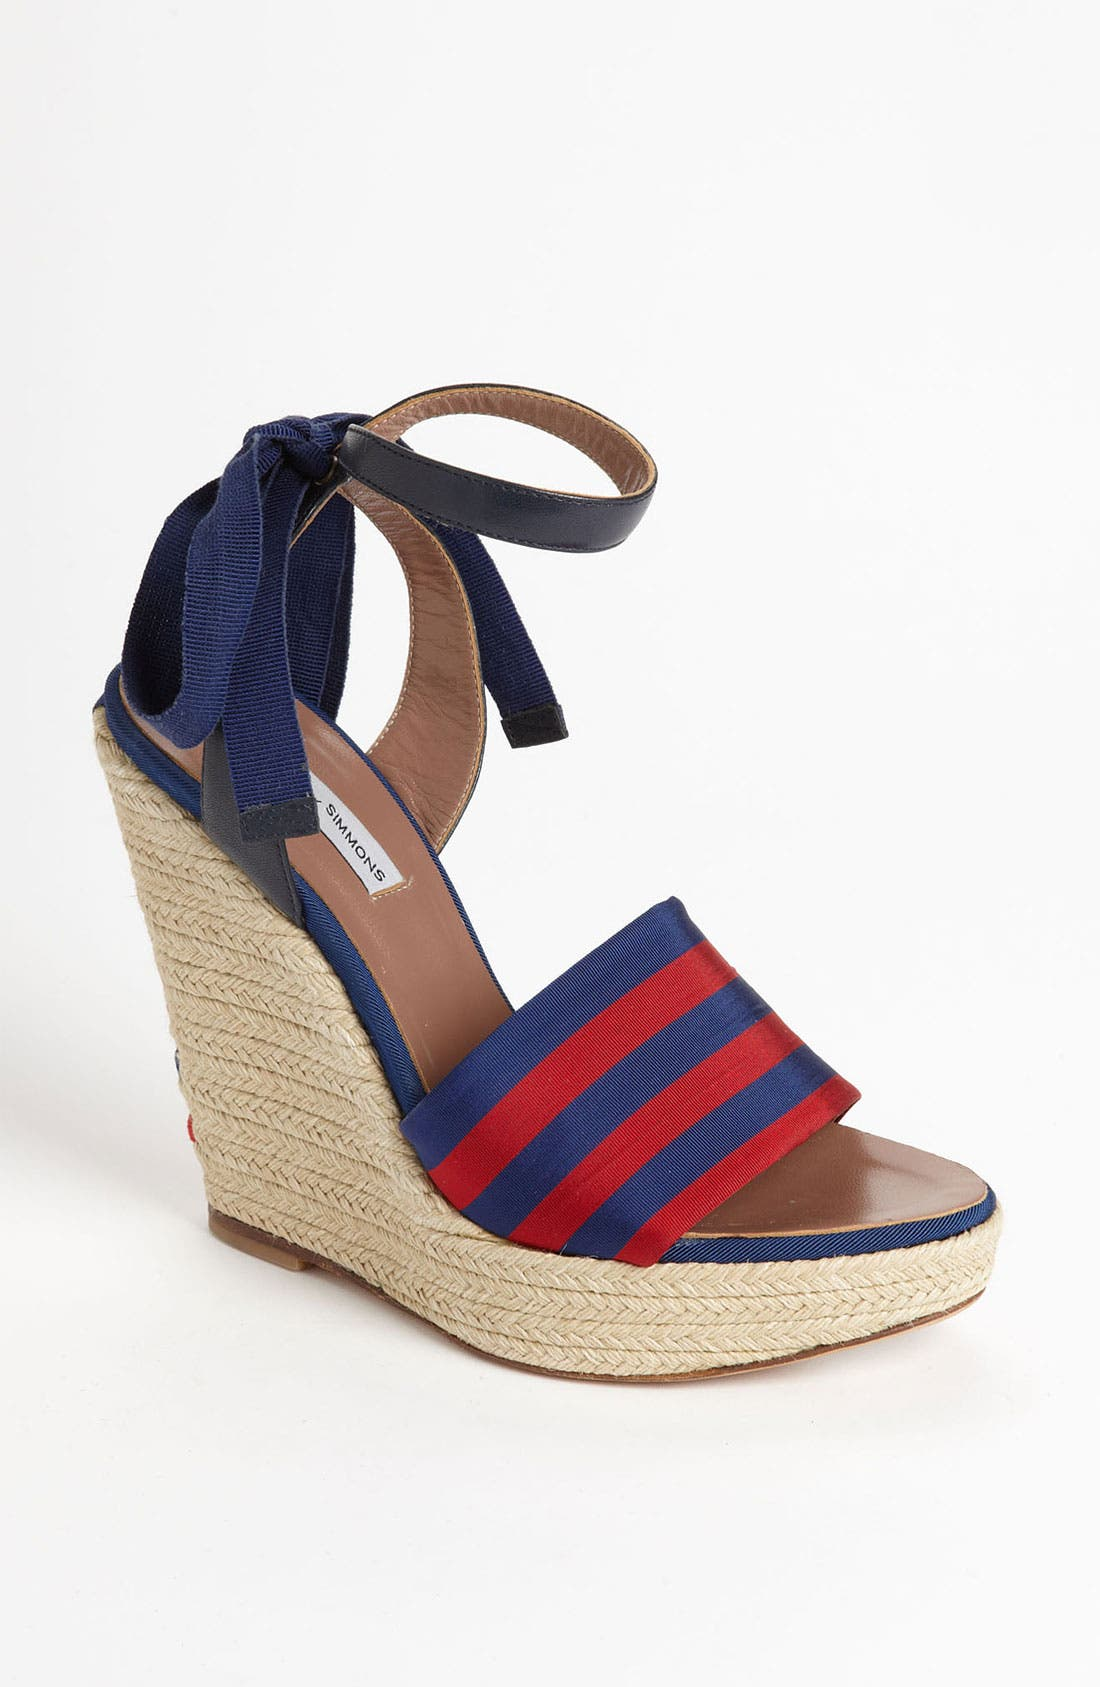 Main Image - Tabitha Simmons 'Alice' Wedge Sandal